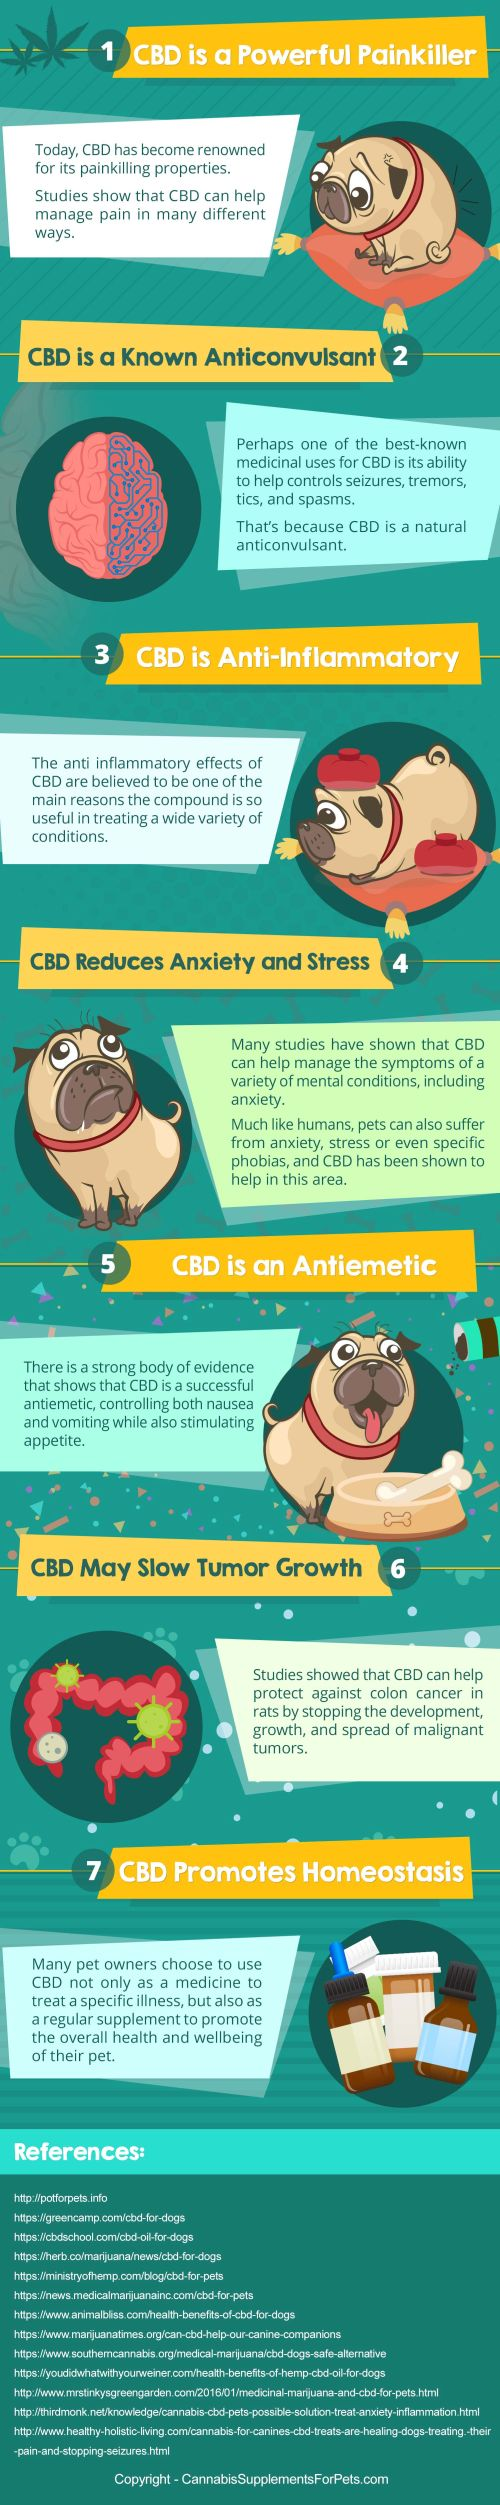 7 Most Common Health Benefits of CBD for Your Pets. [Infographic]